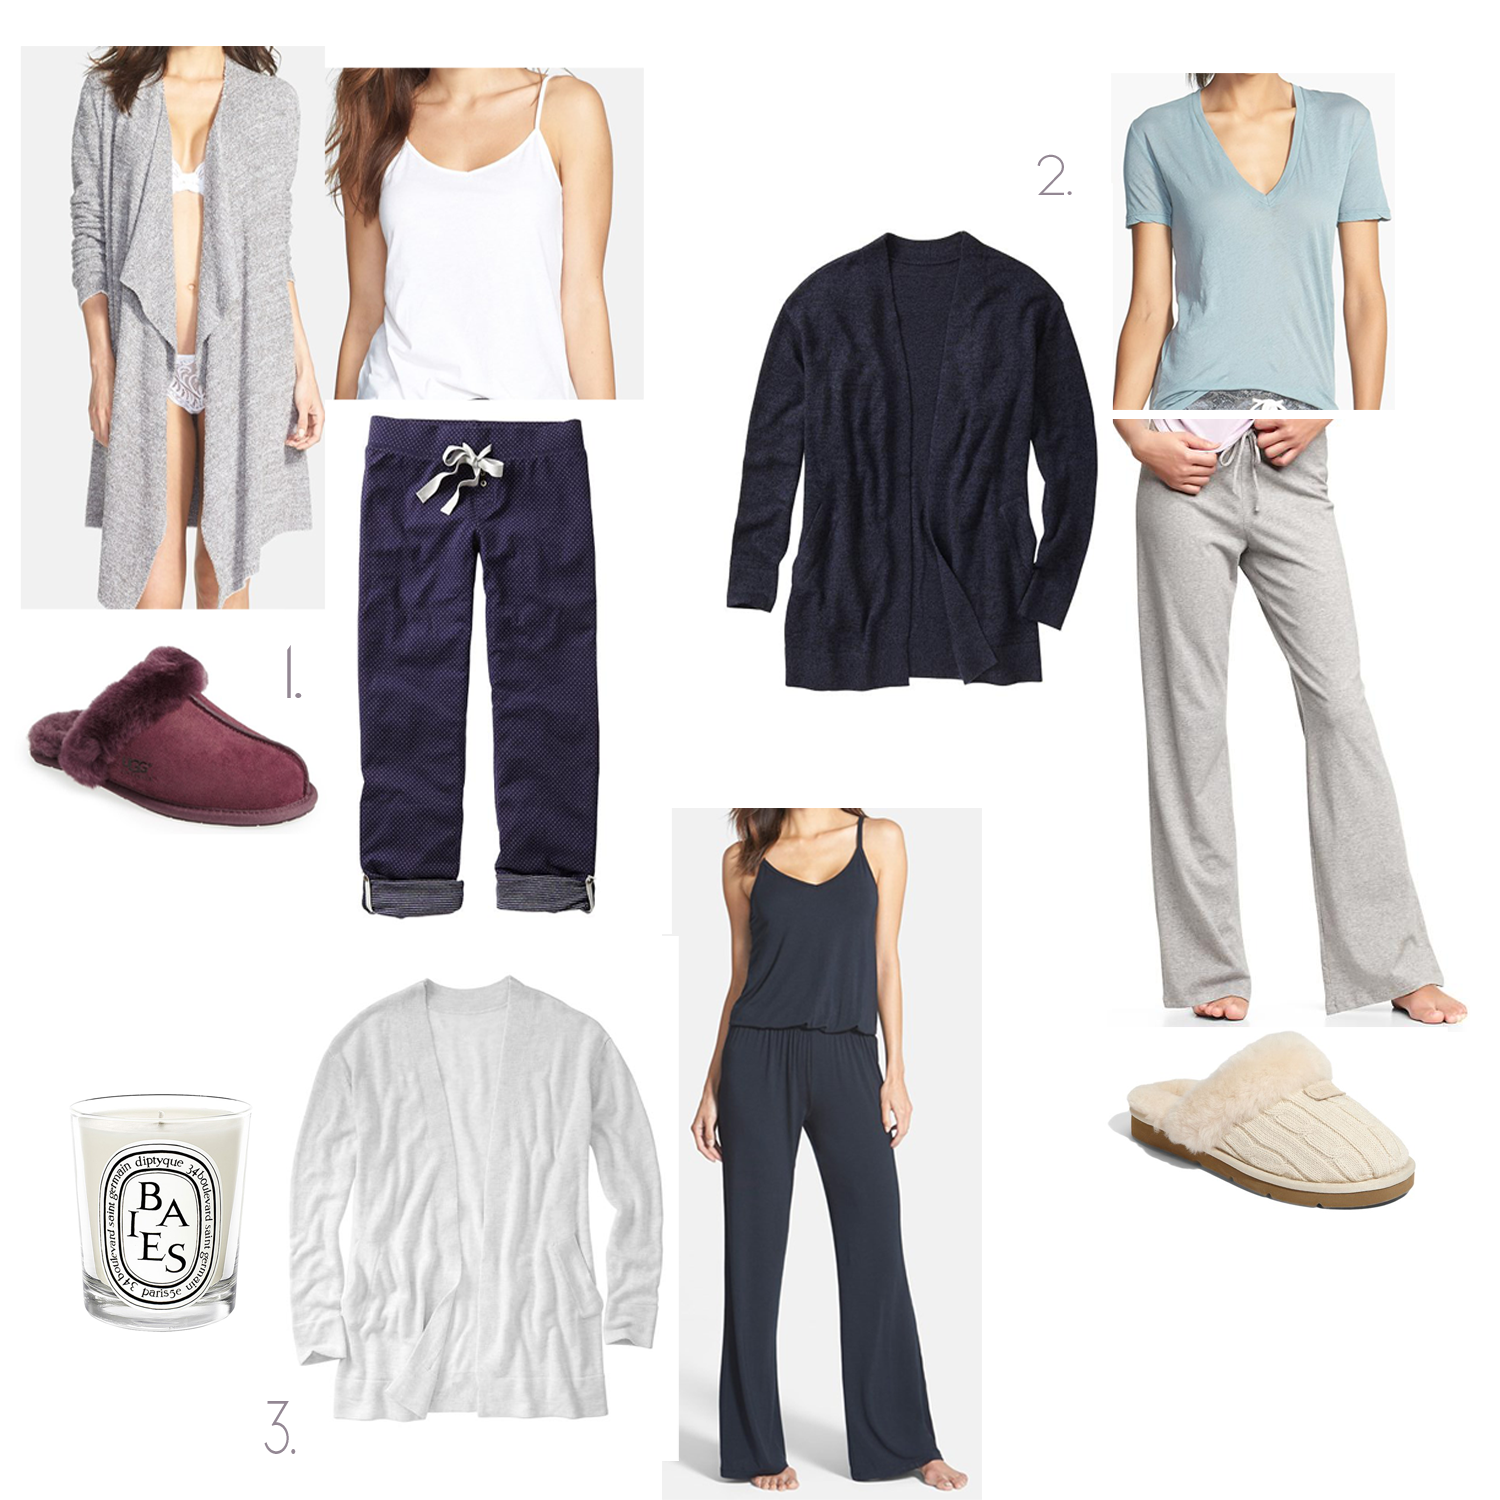 6cff847a36 Monday Must Haves  Lounge Wear + A Starbucks Giveaway - Peaches In A Pod